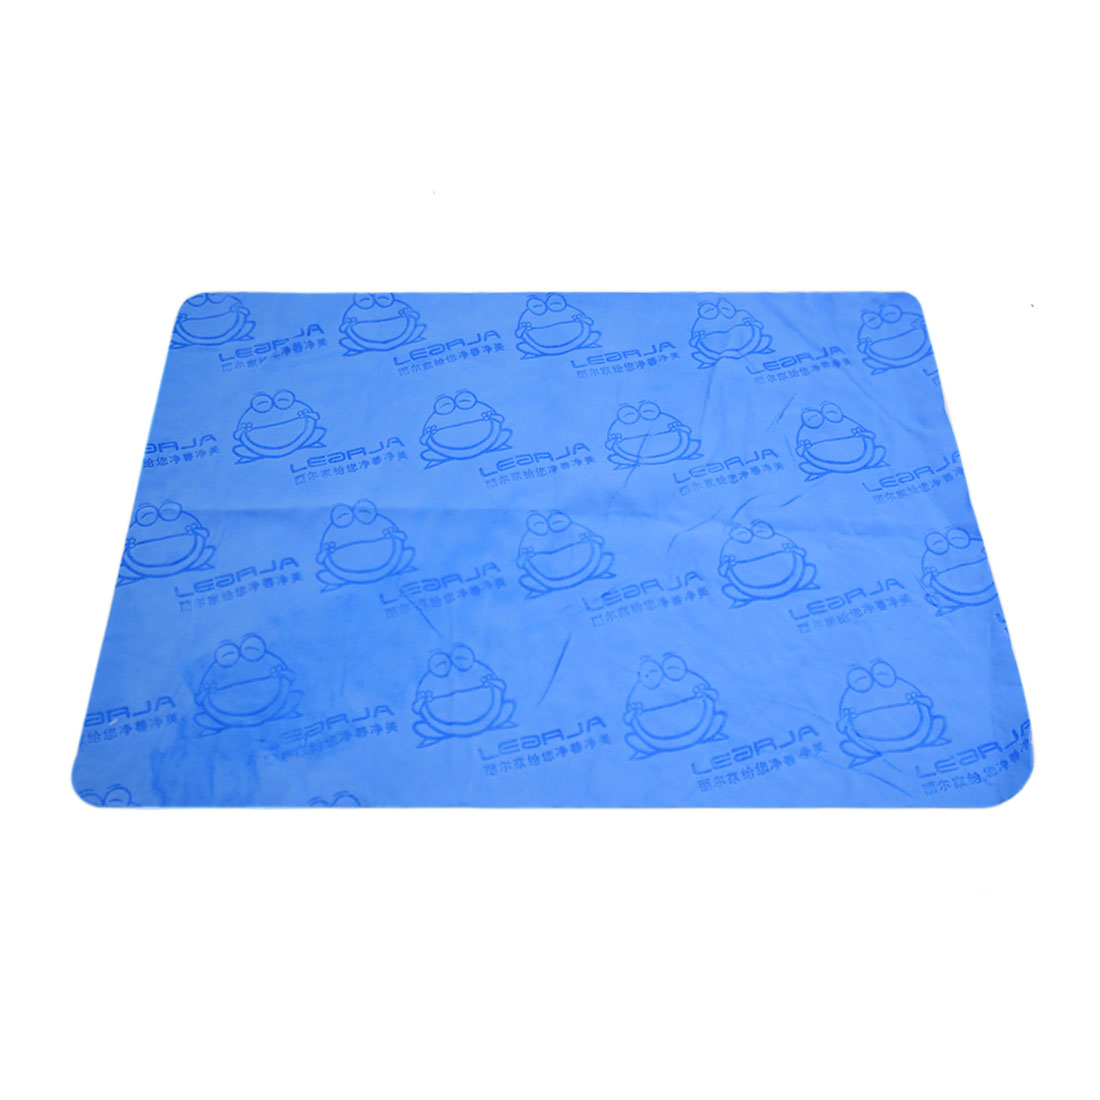 Blue Car Body Window Cleaning Washing Tool Kitchen Wash Cloth Absorbent Towel